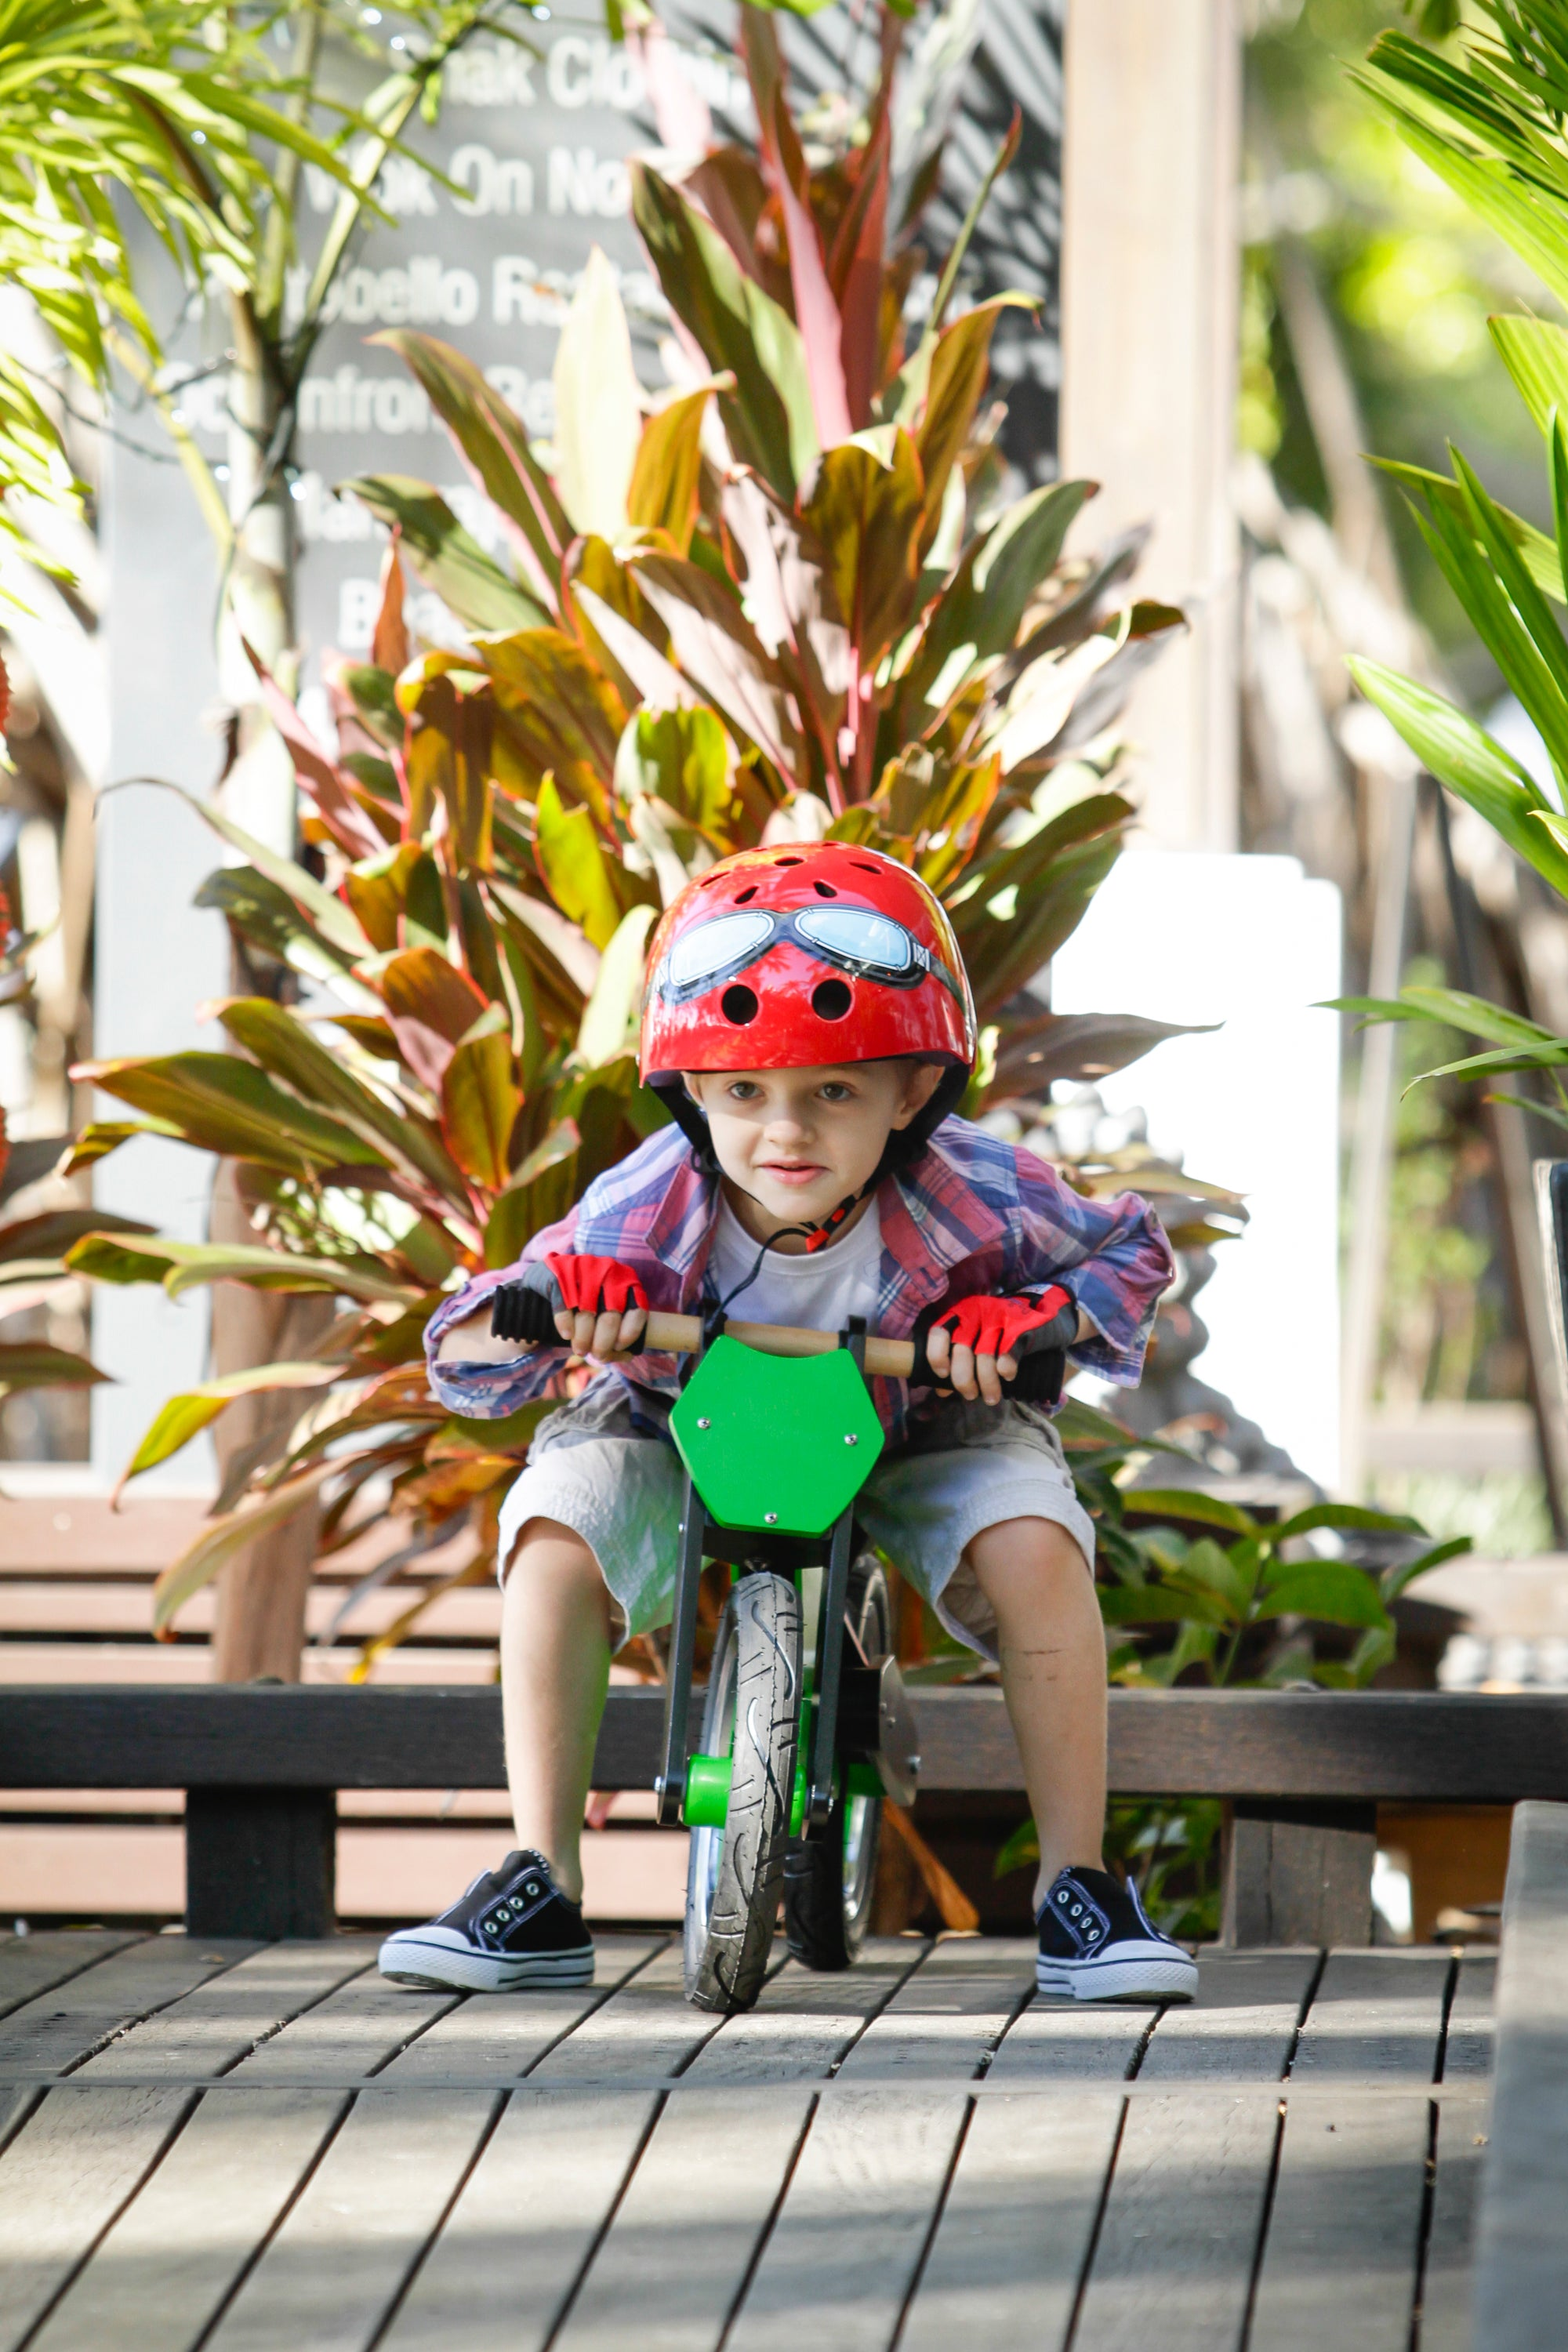 A photo of a young boy wearing a Red Goggle helmet and a pair of Red Kiddimoto Gloves on a Green Superbike. He looks like he is preparing himself to ride down a dip